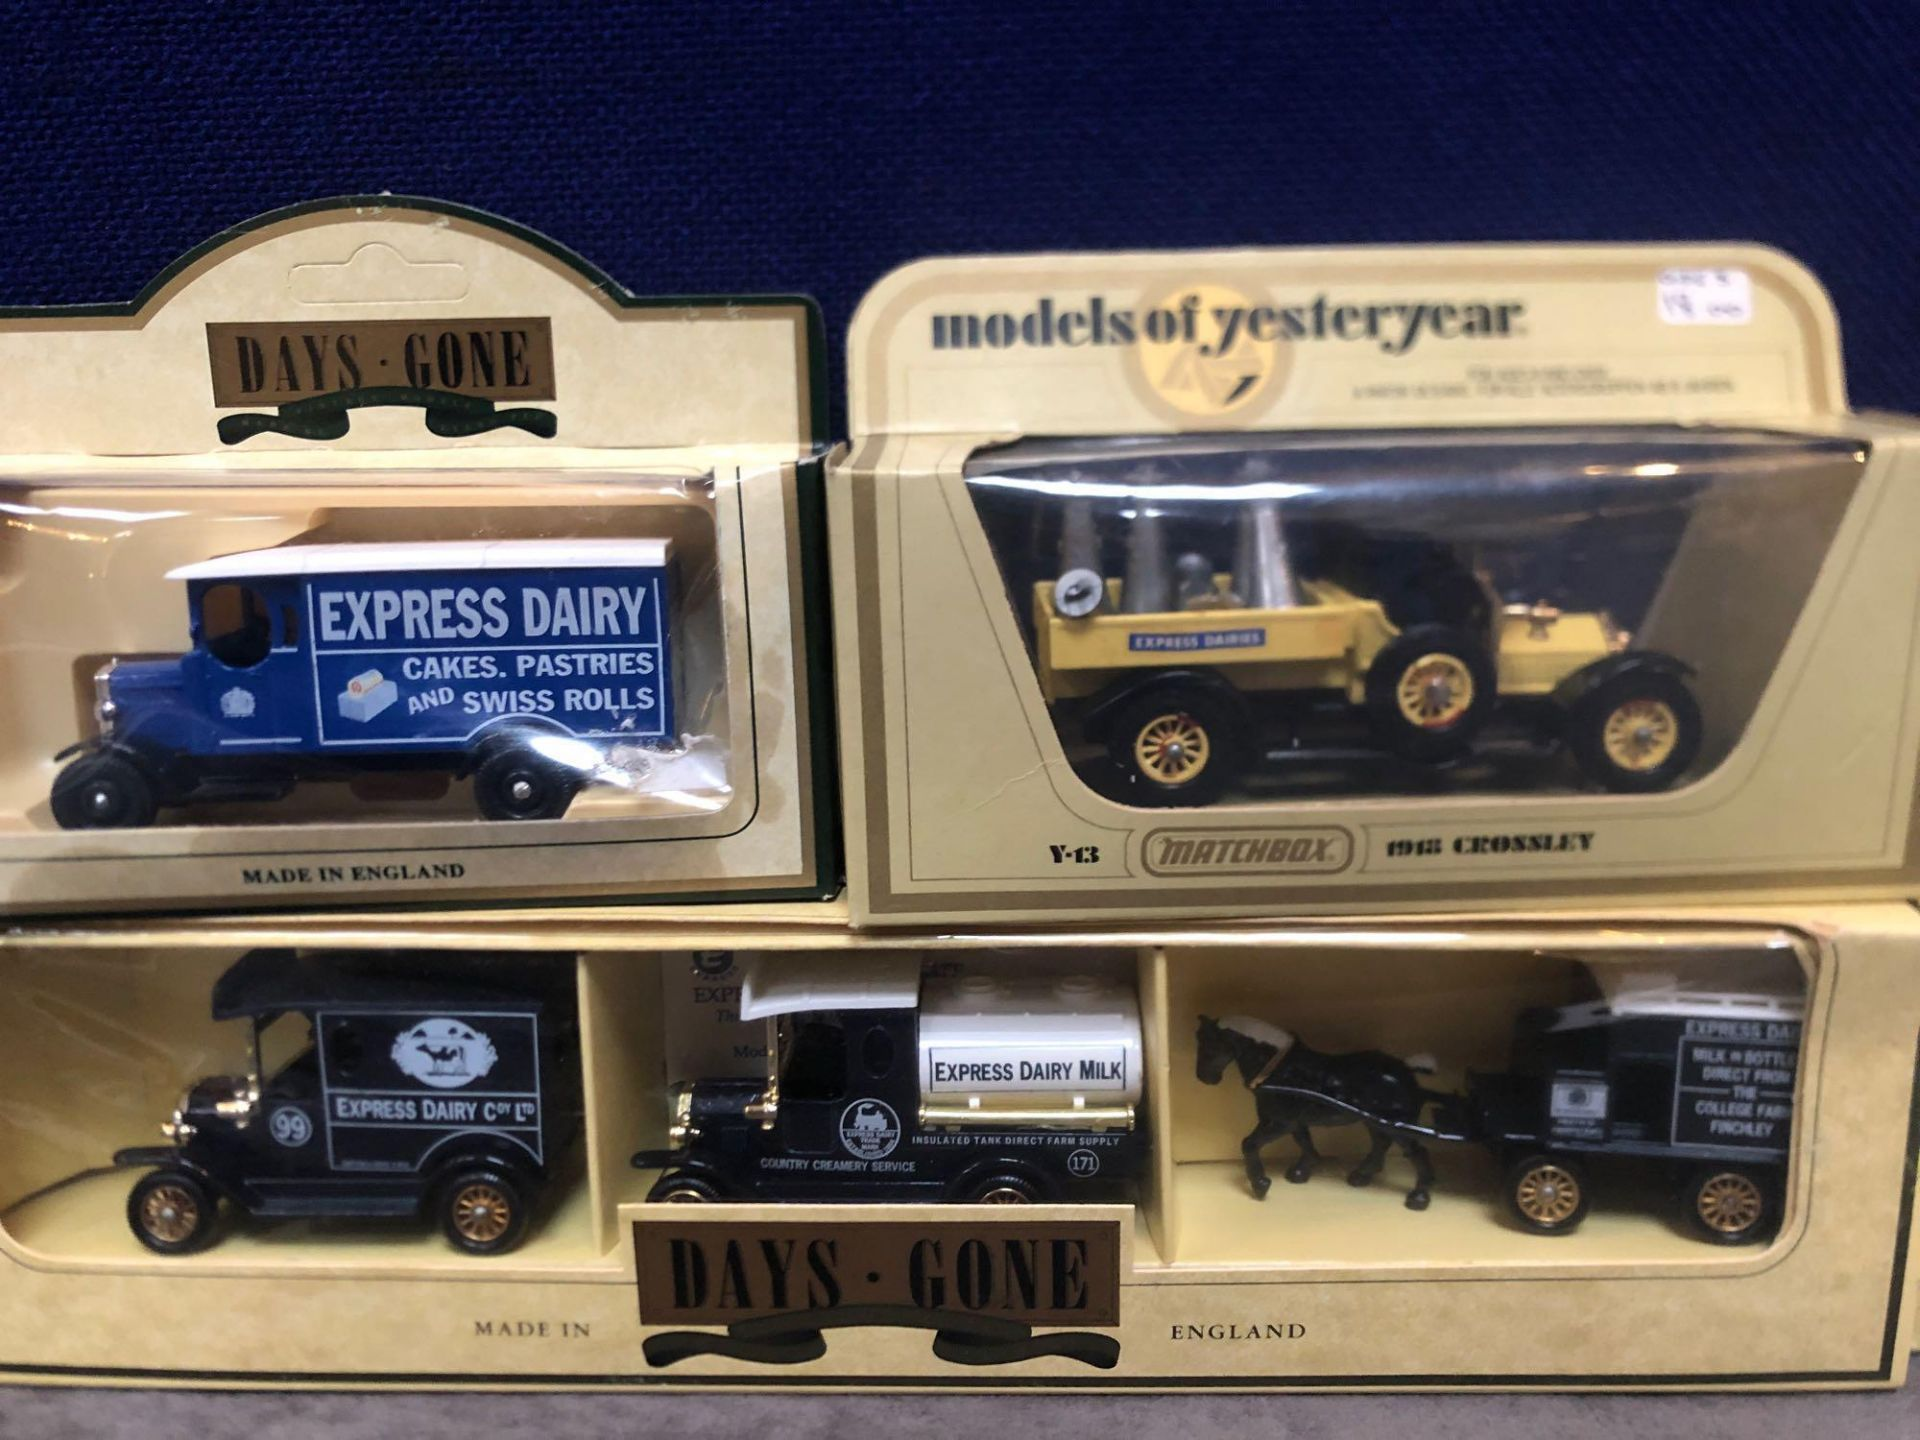 2x Lledo Diecast Express Dairy Sets And 2x Lledo Diecast Express Dairy Vehicles One Rare Code Y13- - Image 3 of 3